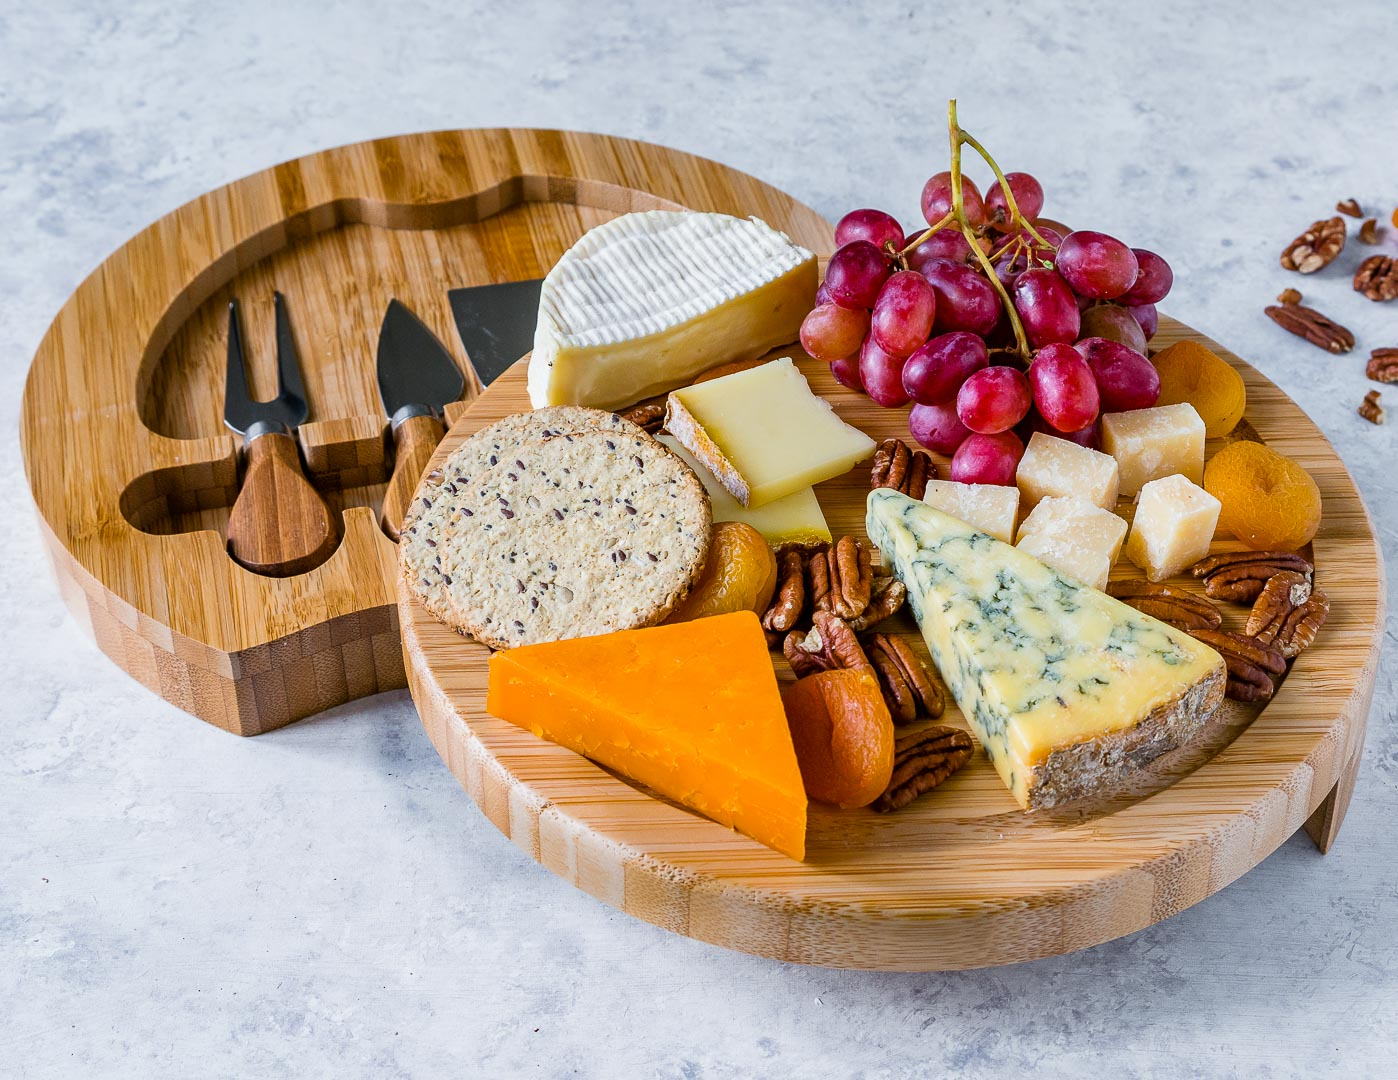 How To Make A Cheese Board 4